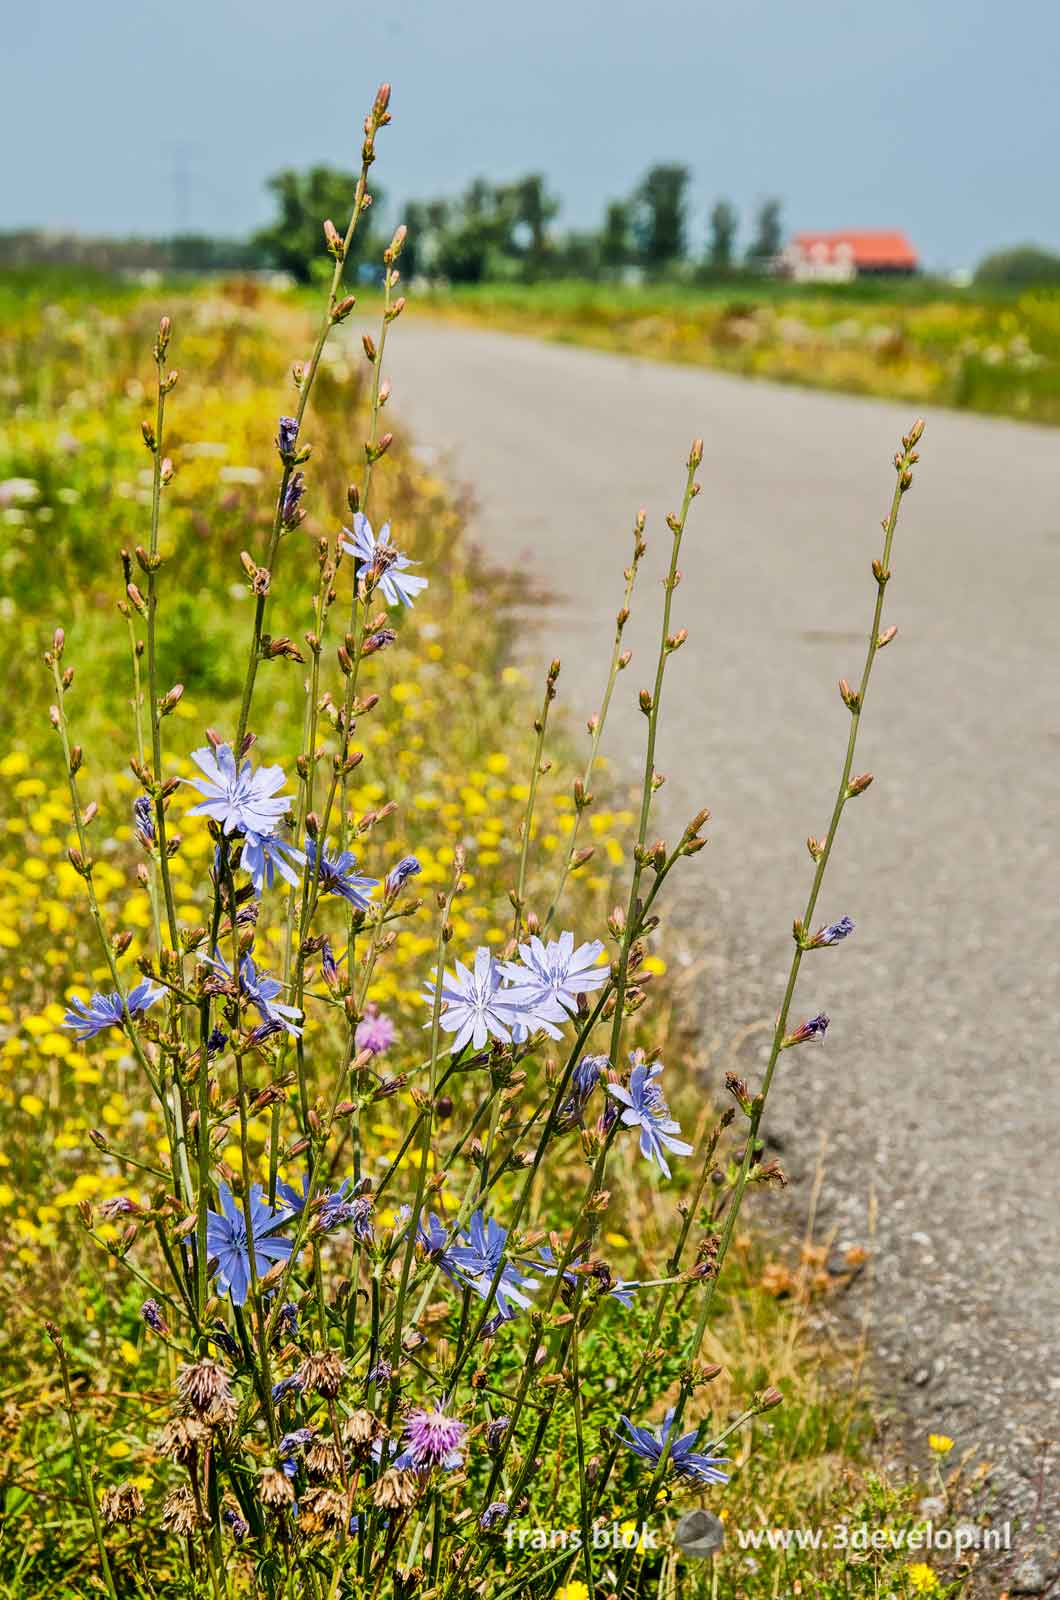 Chicory along the side of the road in the Noordwaard region in the Biesbosch national park in the Netherlands